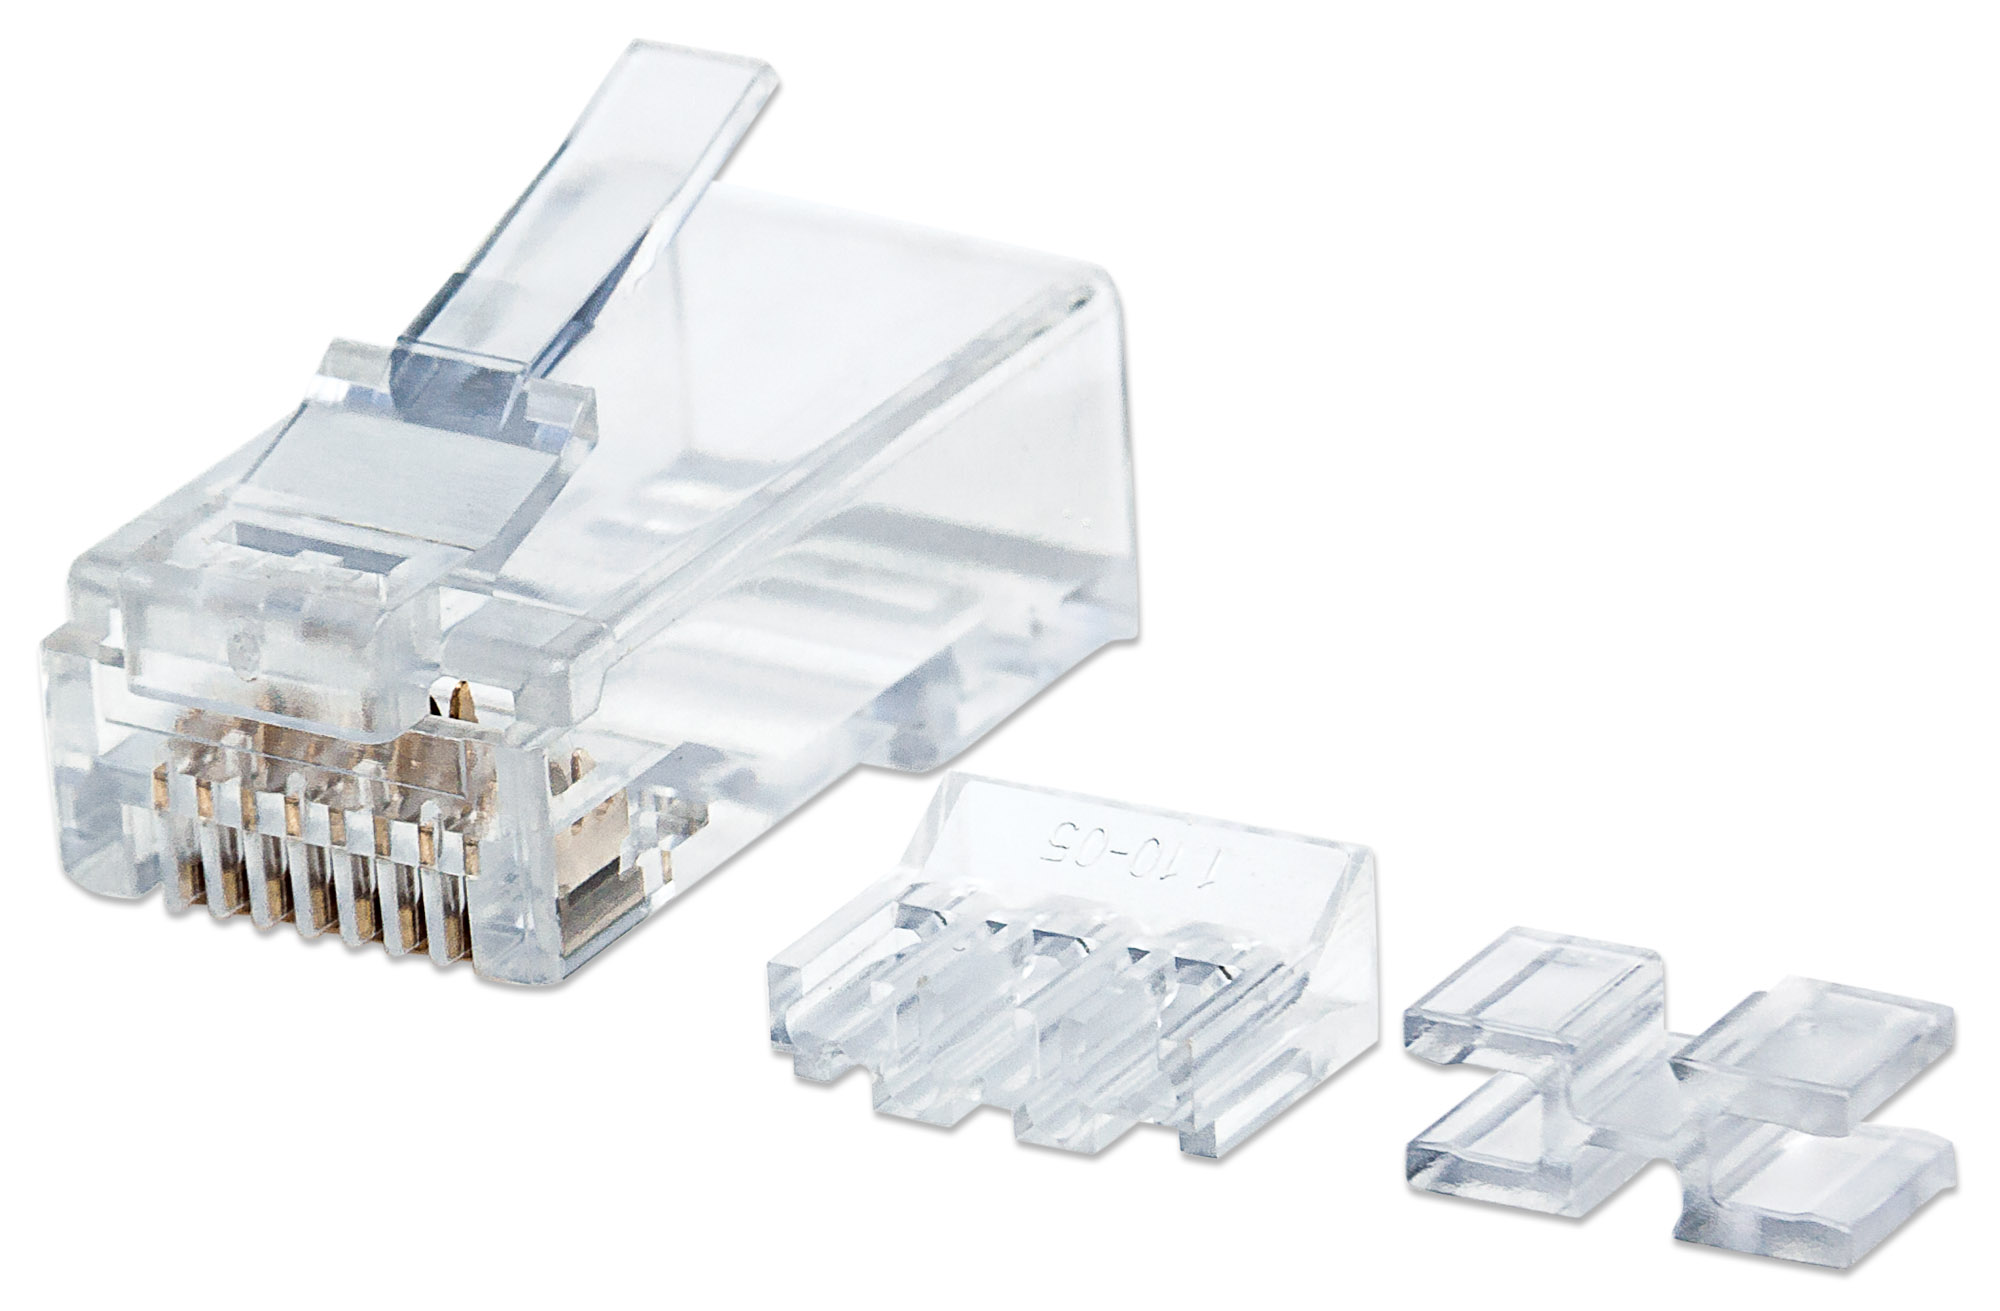 80-Pack Cat6 RJ45 Modular Plugs Pro Line